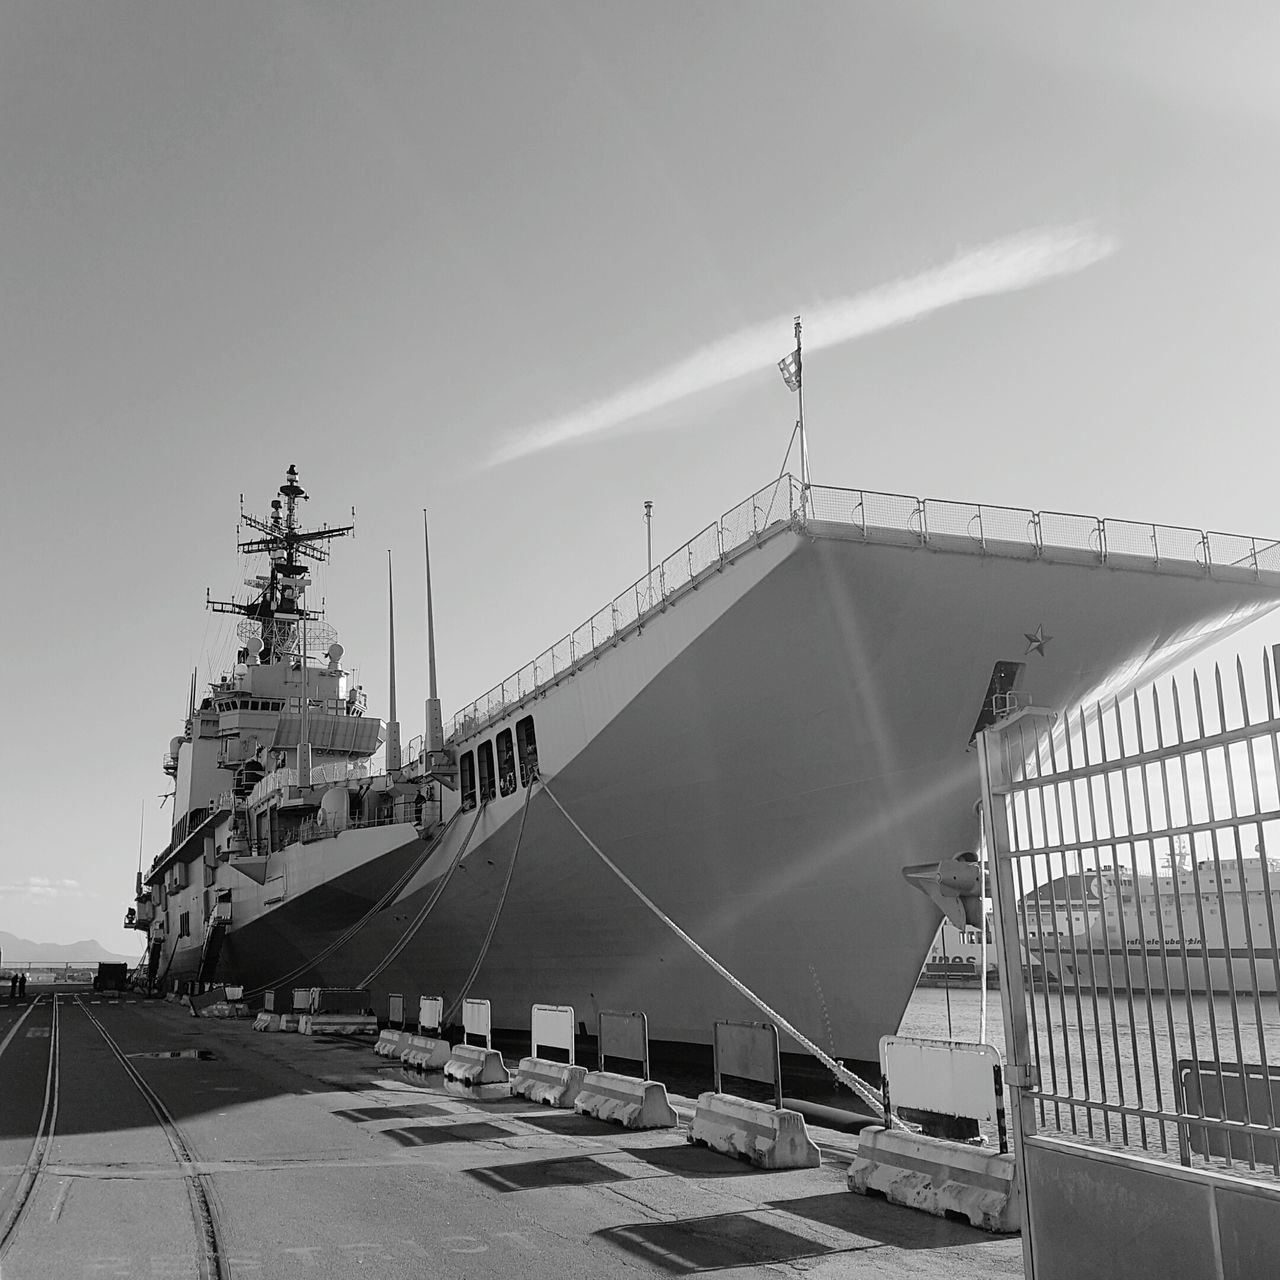 Garibaldi in Naples harbour. Outdoors Harbor No People Napoli Italy Napoli_naples Napoli Waterfront Sea Life Water Battle Of The Cities Enjoying Life Architecture Sea And Sky Sea View Blackandwhite Black & White Black And White Photography Warships Warship Is Ready Militarybase Military Military Unit